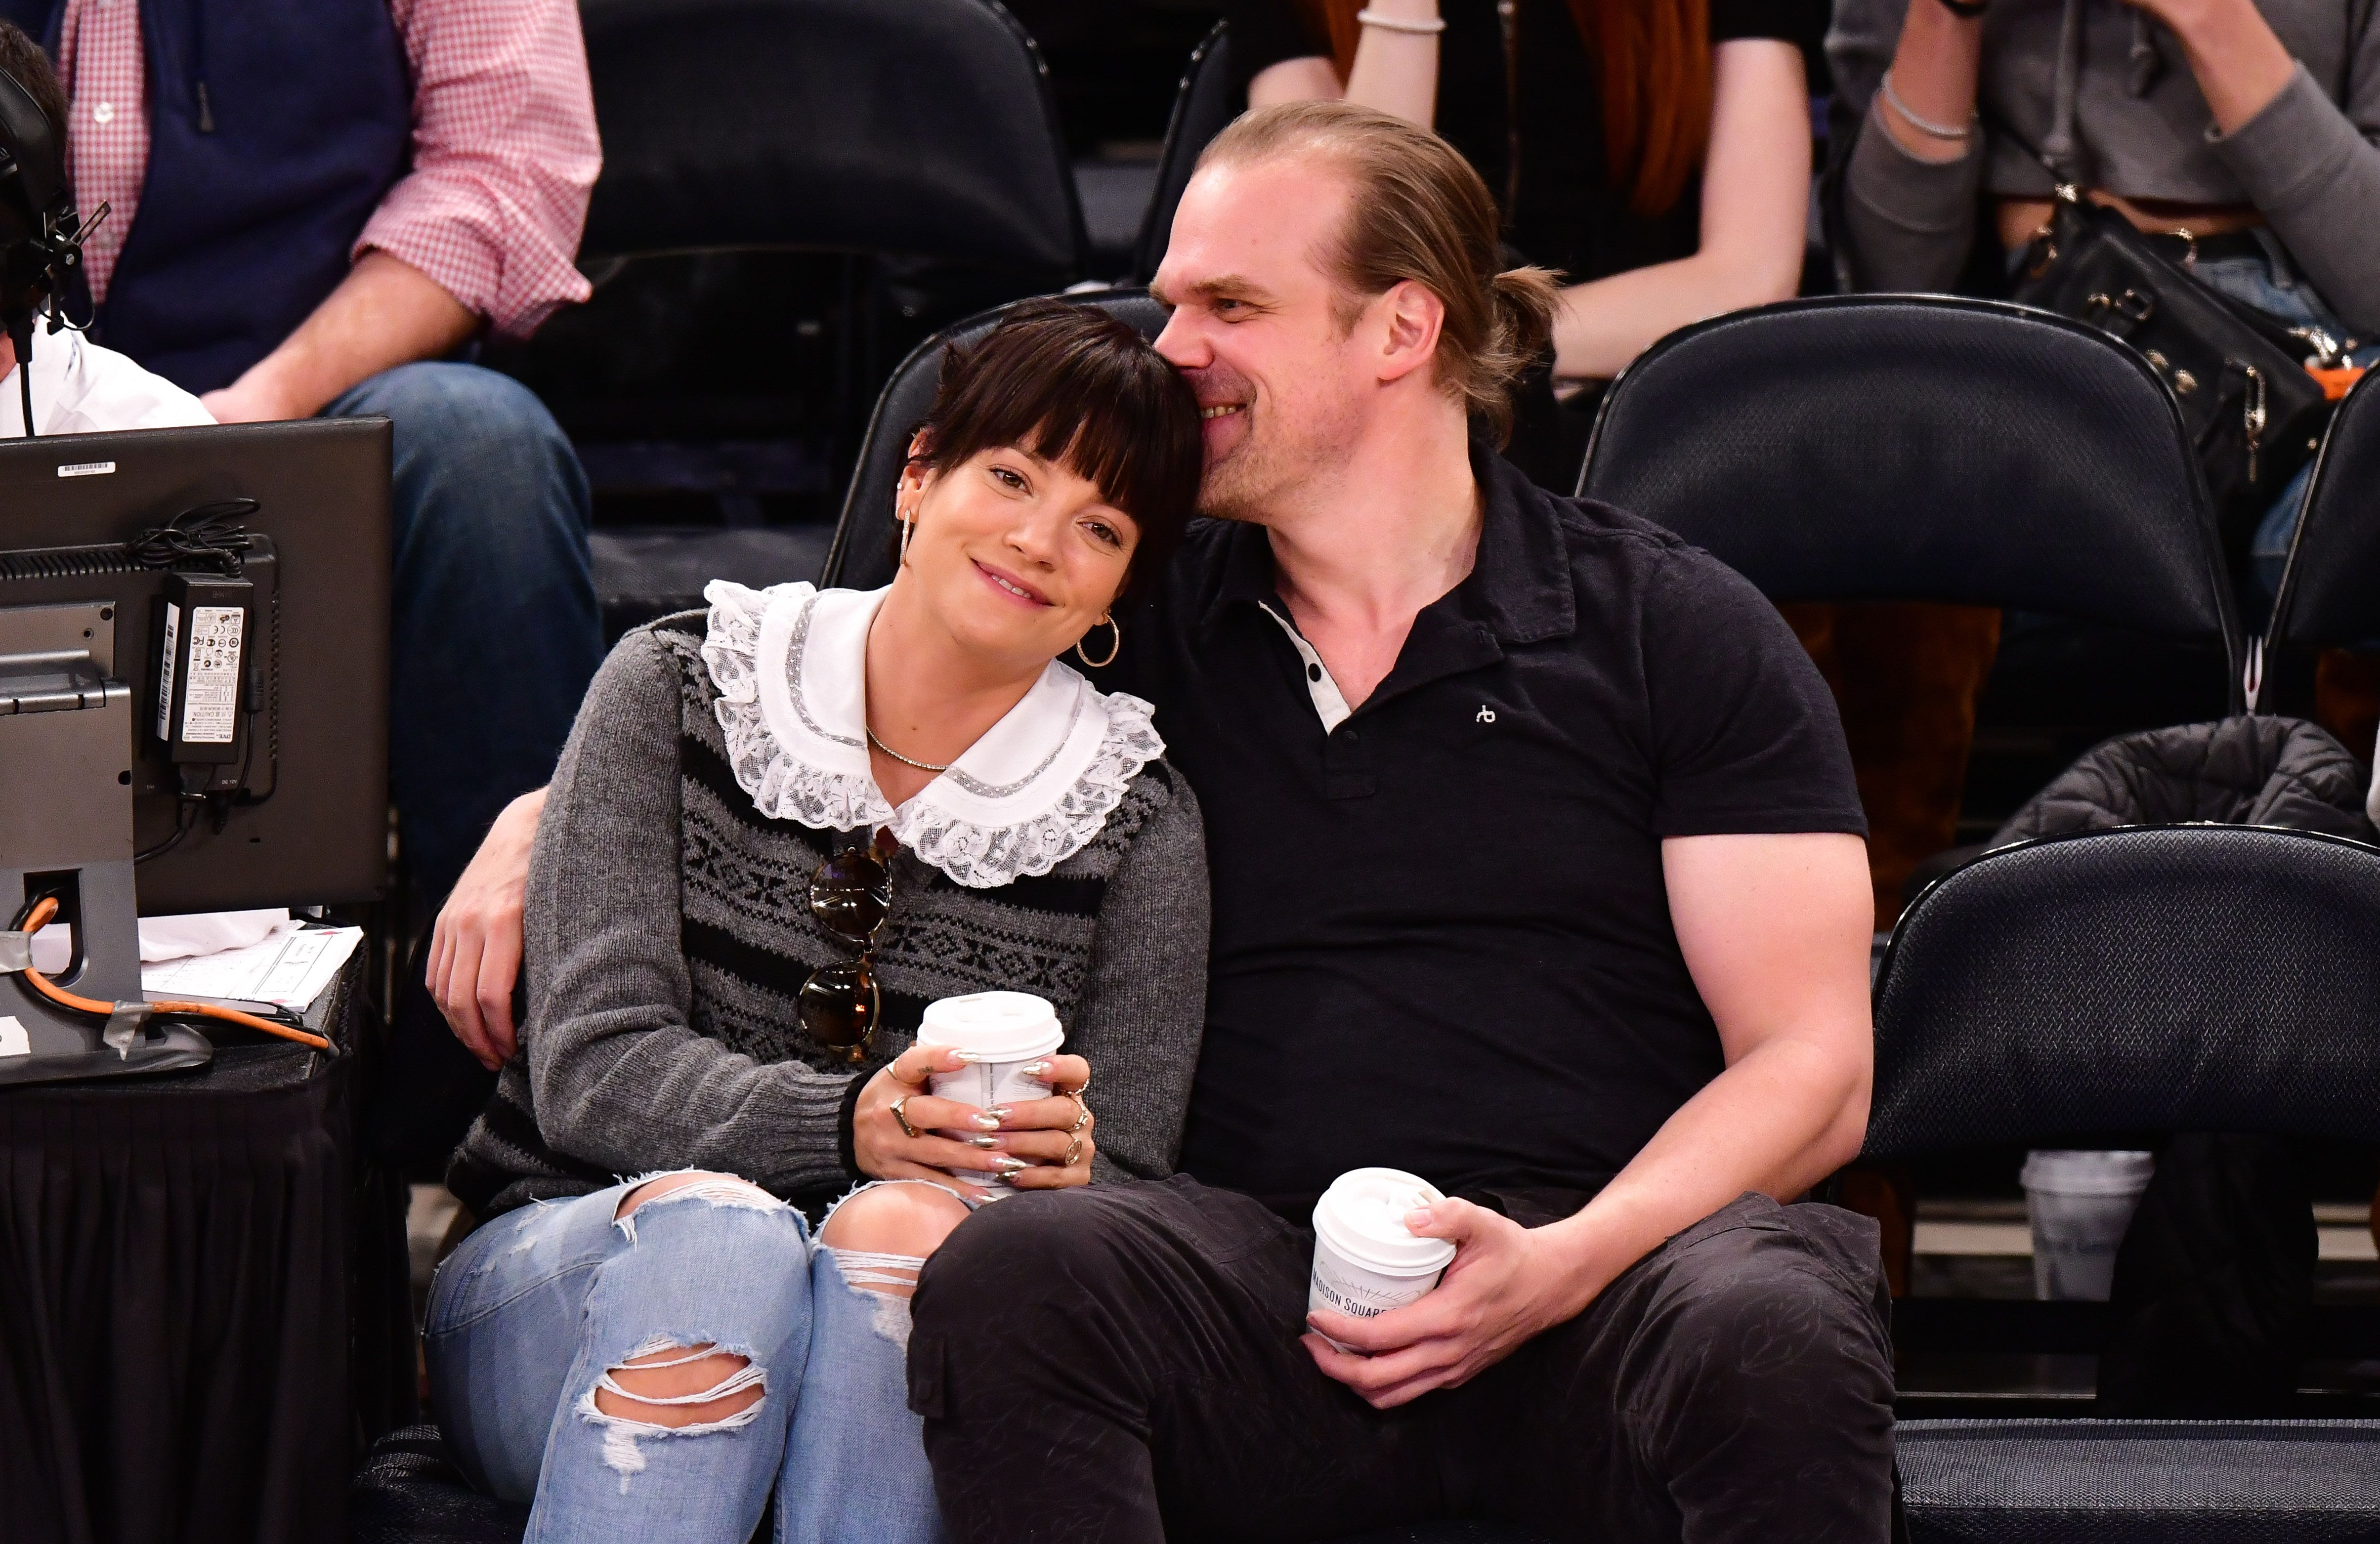 Lily Allen and David Harbour at theNew York Knicks v New Orleans Pelicans preseason game on October 18, 2019, in New York City   Photo:James Devaney/Getty Images